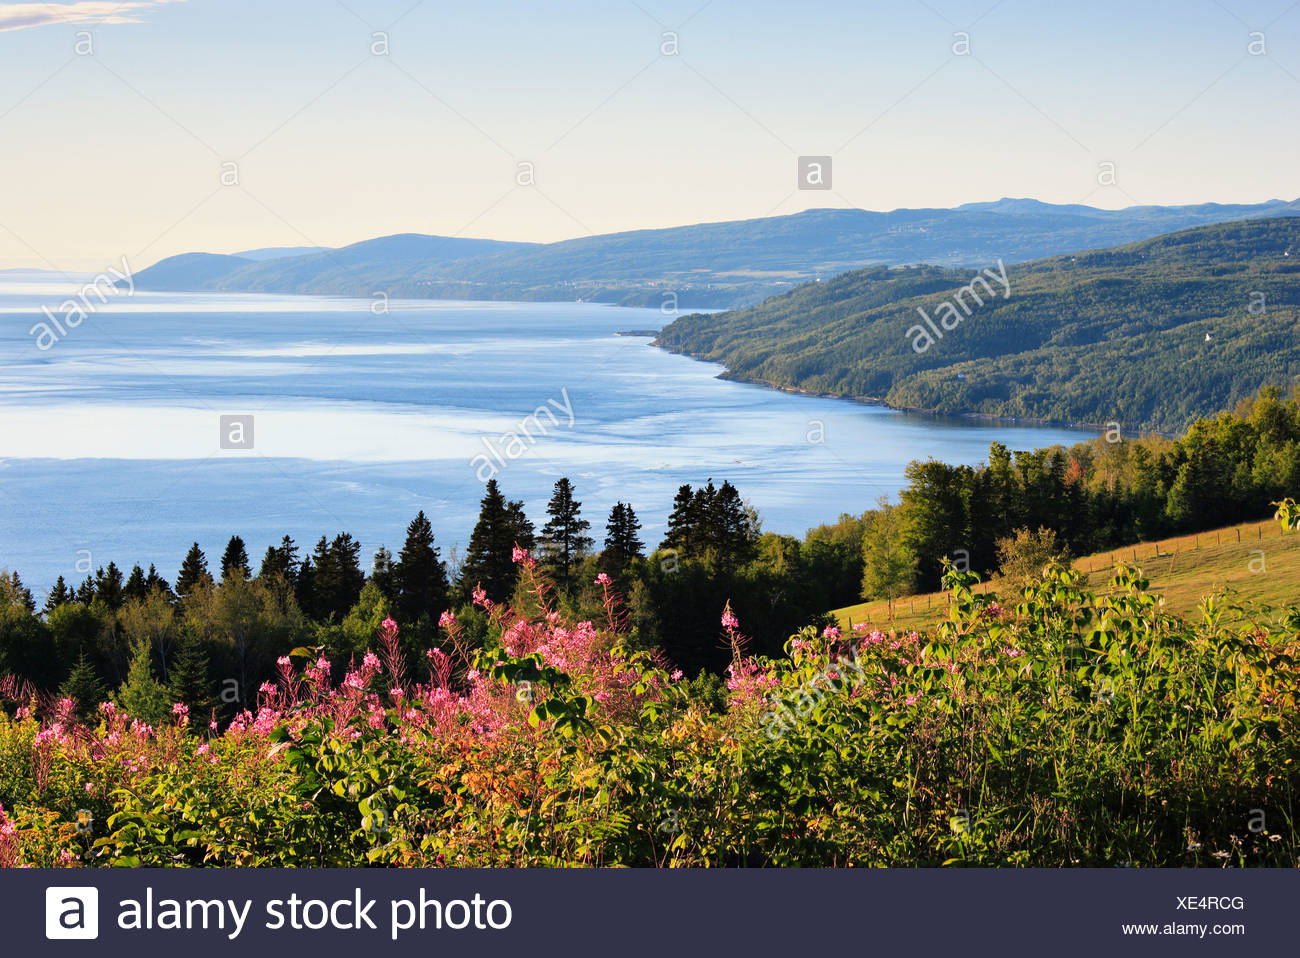 Artist's Choice: Fireweed and St. Lawrence River, Charlevoix Region, Saint-Irenee, Quebec. - Stock Image